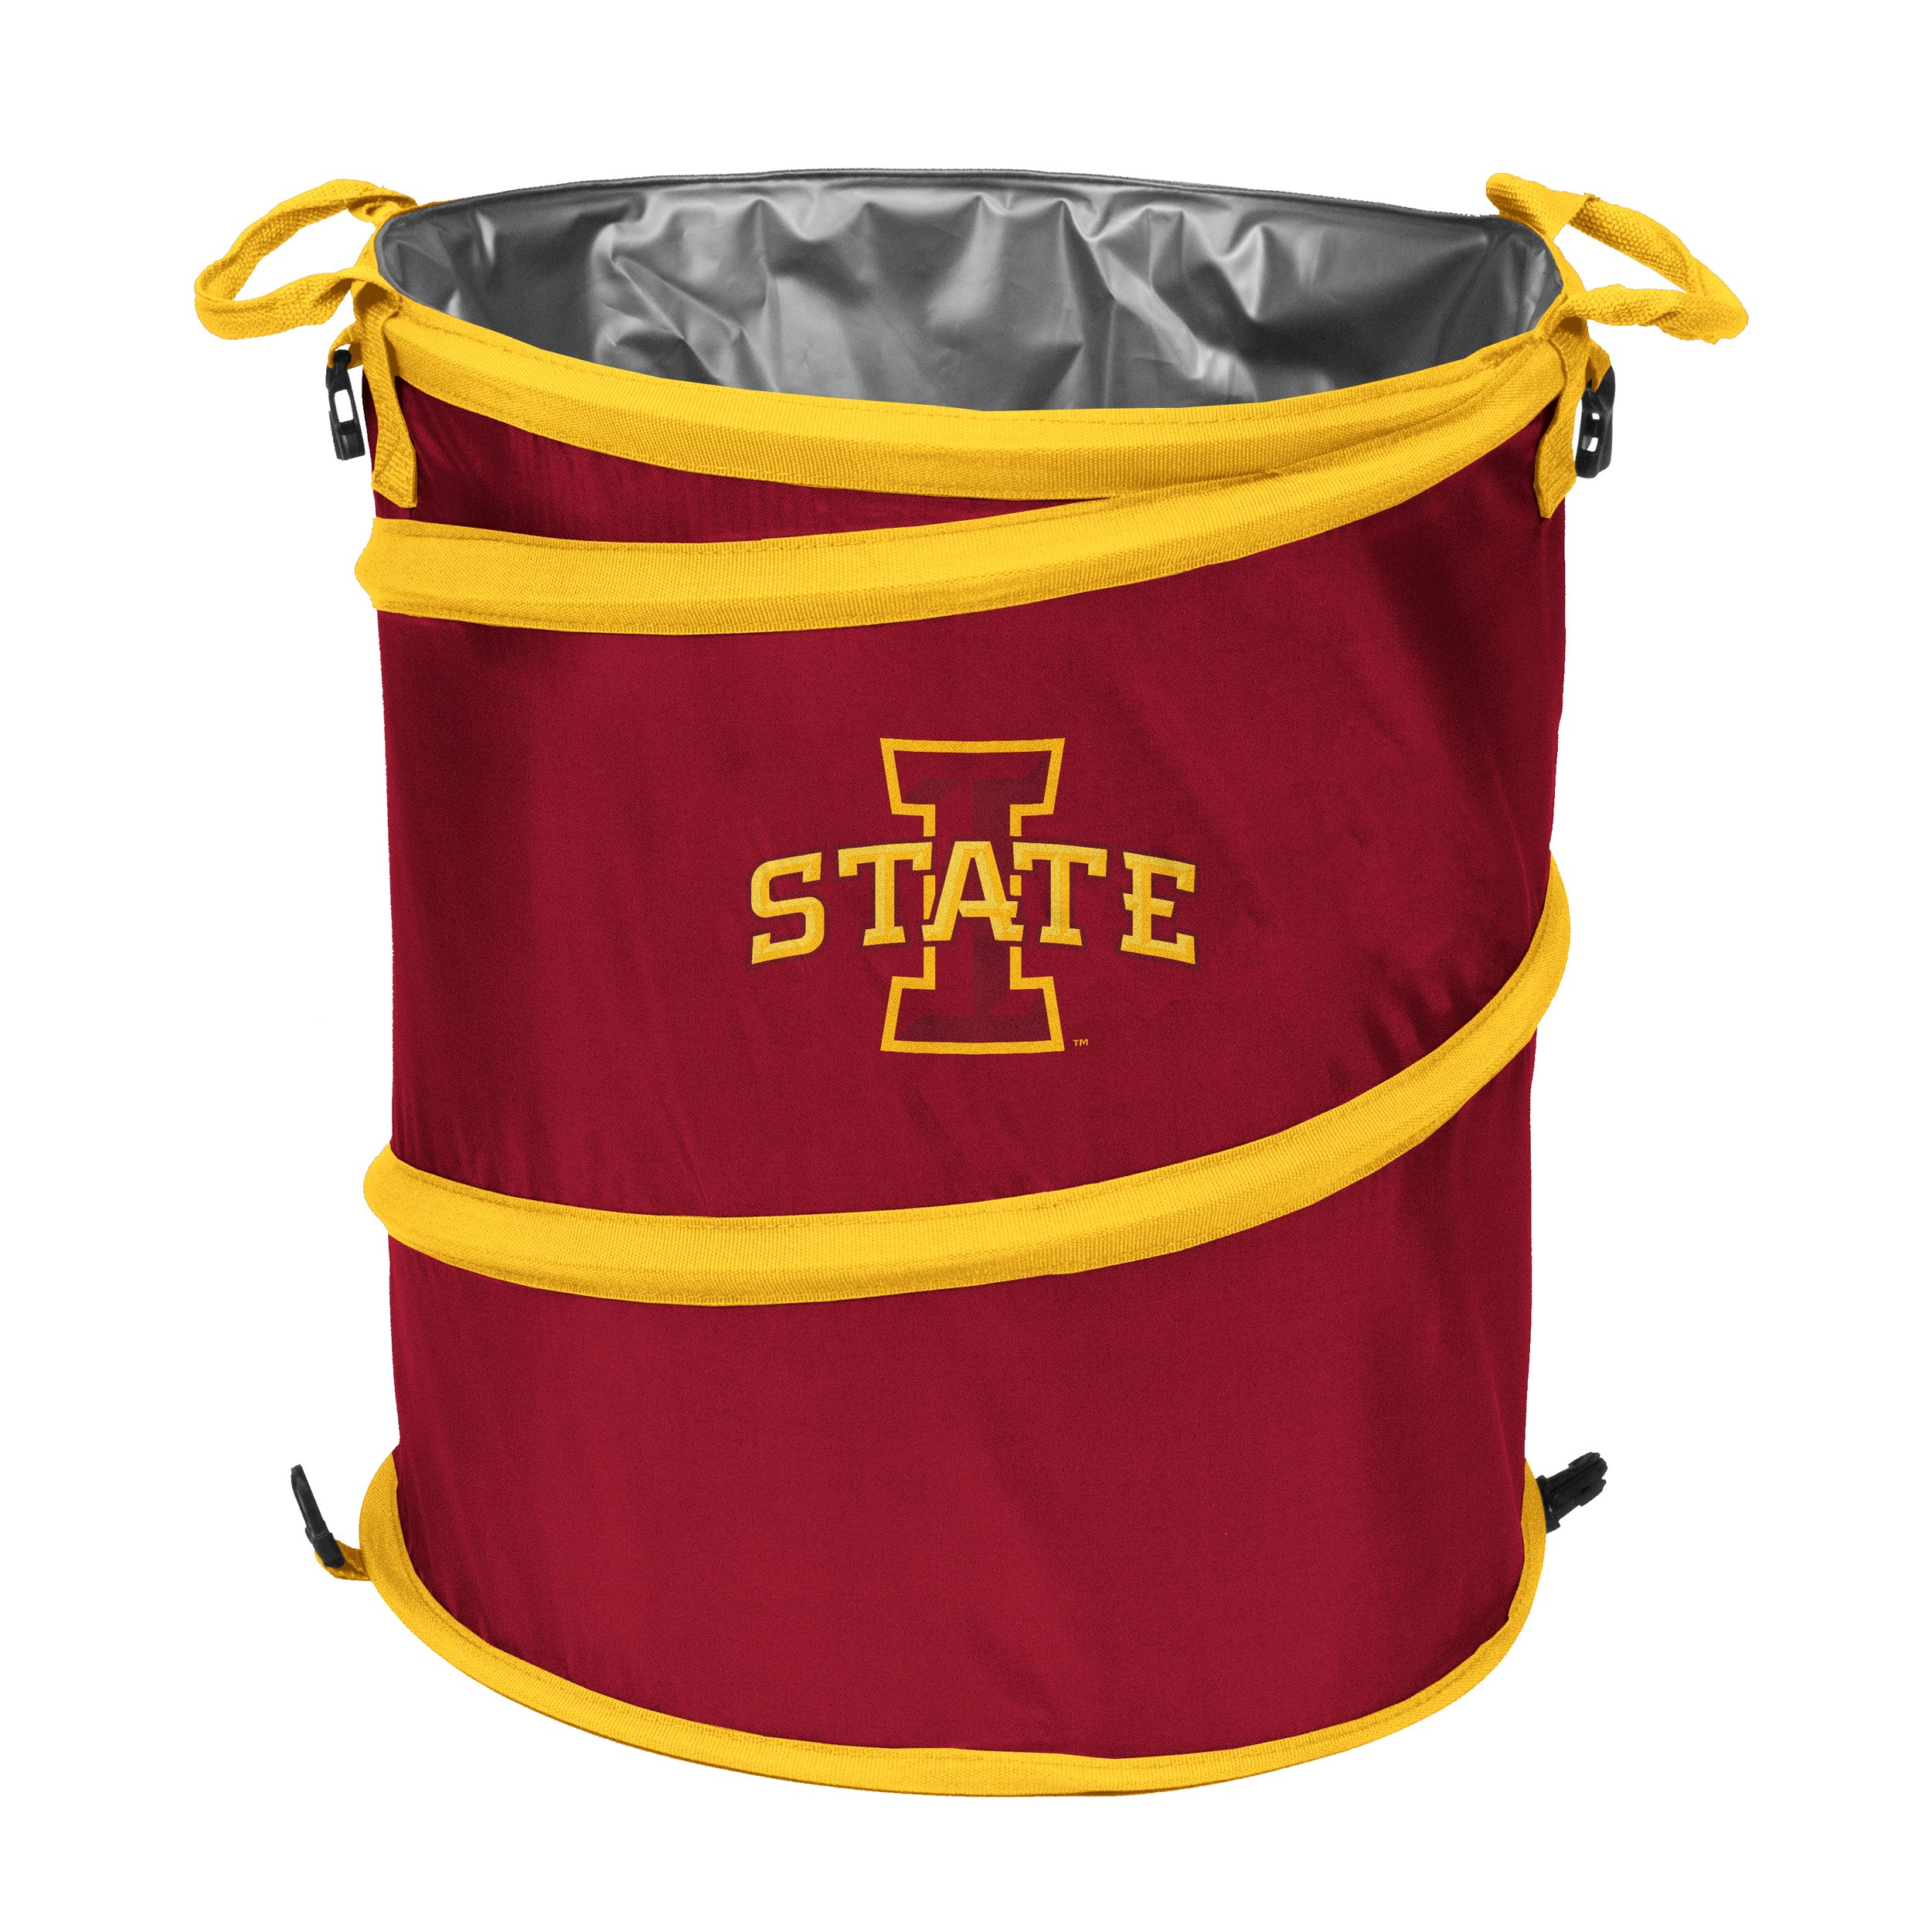 NCAA Iowa State Cyclones Adult Collapsible 3-in-1 Trash Can, Cardinal